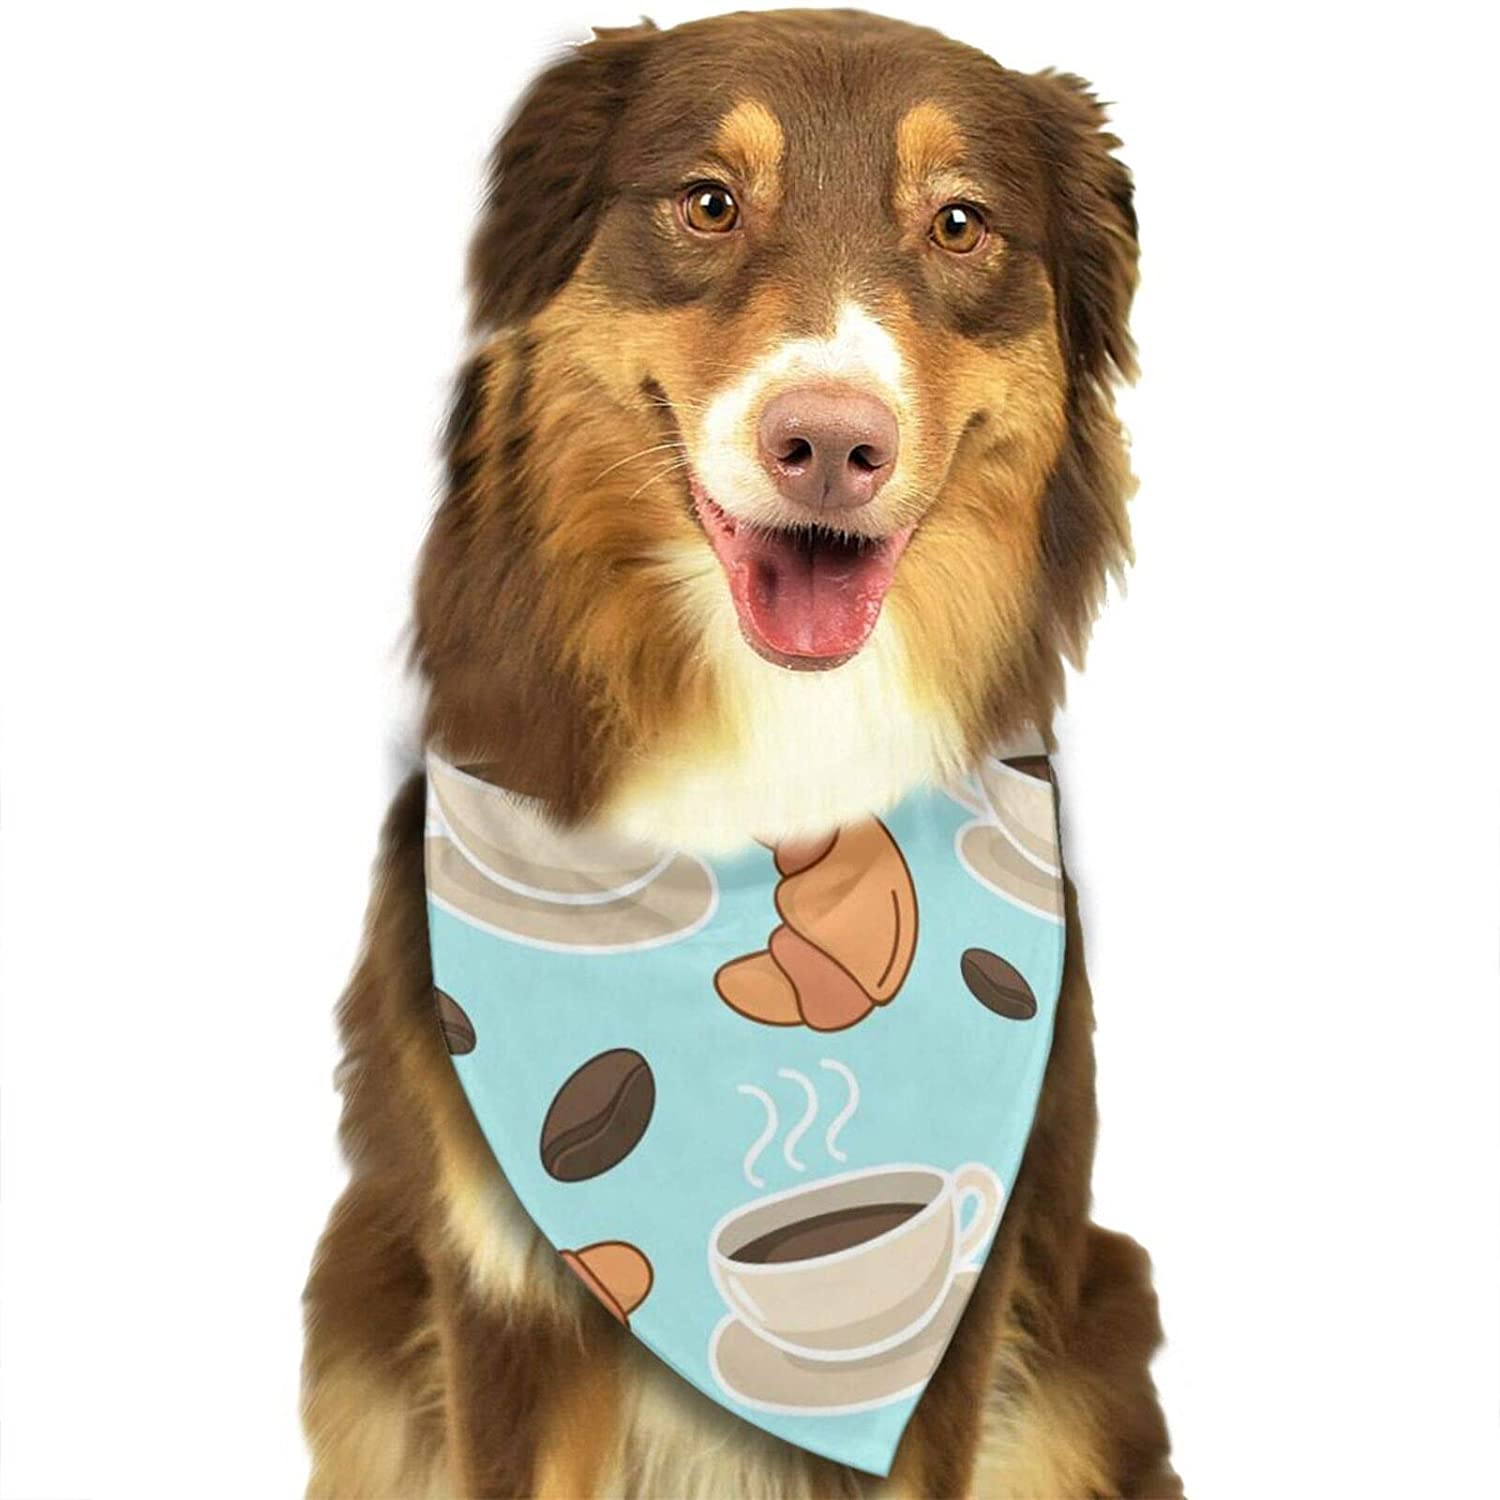 Chicken with Axe Dog Bandana, Pet Bandana Scarf Triangle Bibs Kerchief Pet Costume Accessories Decoration for Small Medium Large Dogs Cats Pets